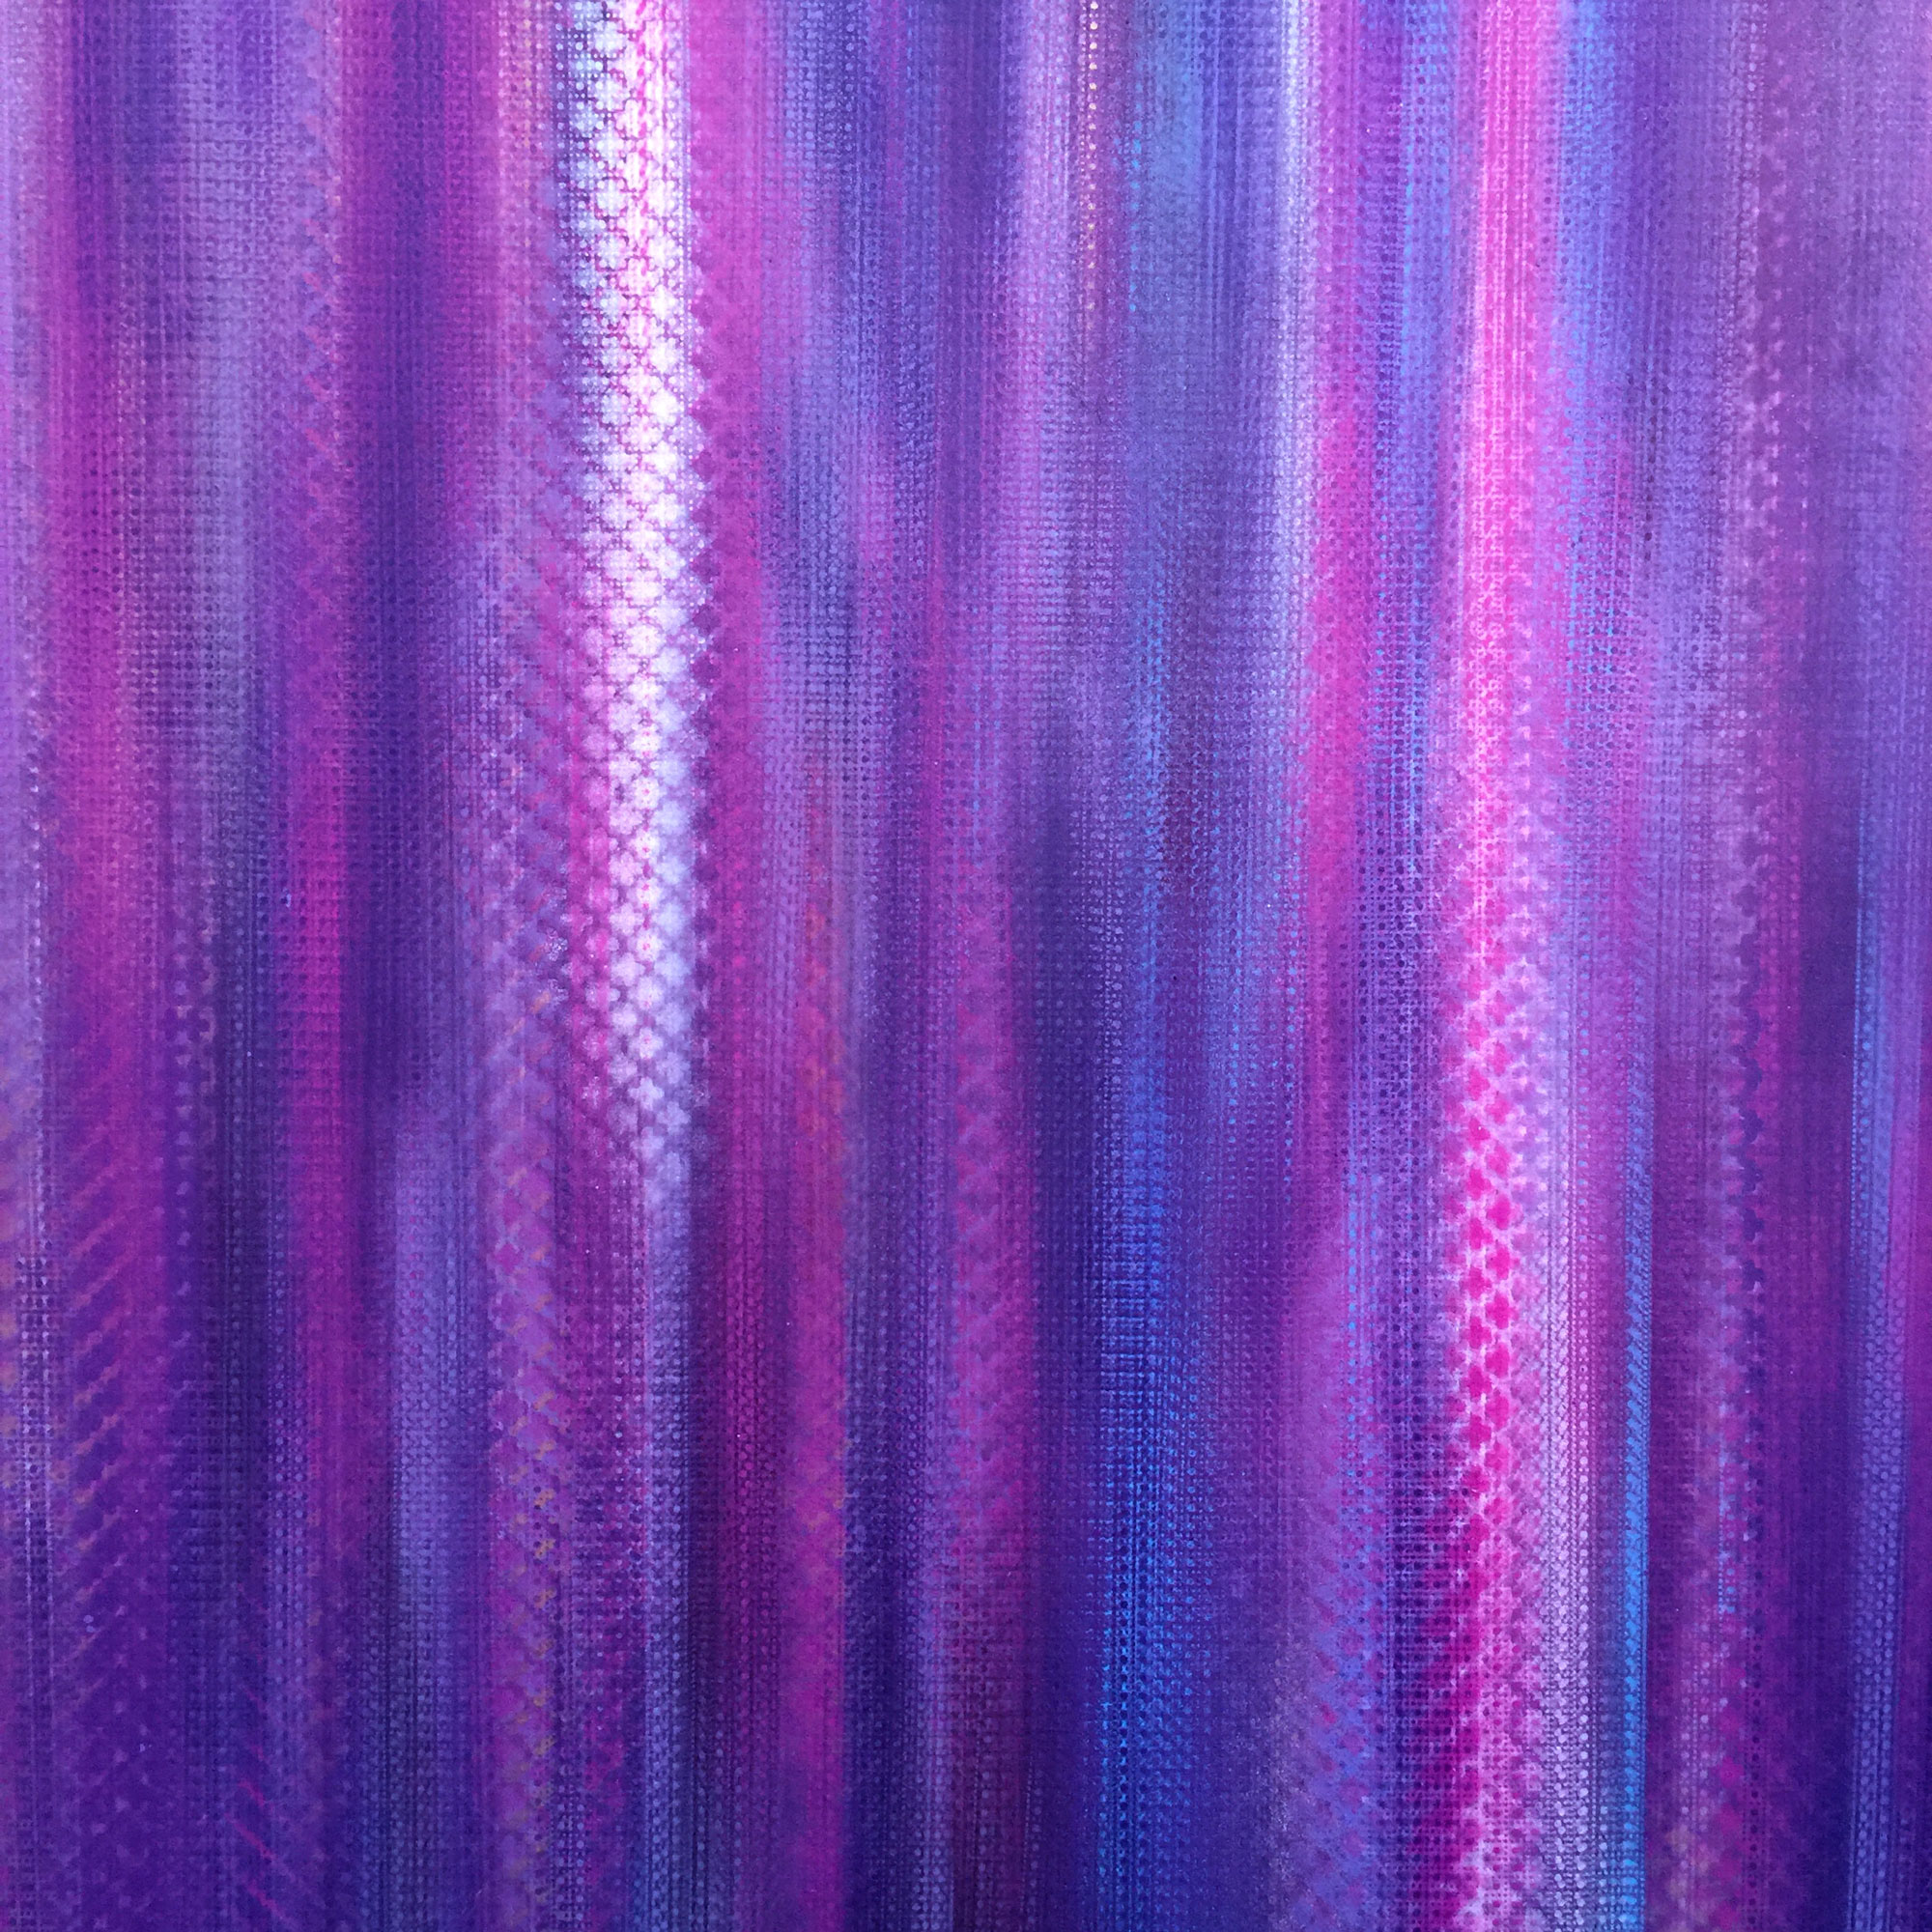 Purple Rain - 2016 ACRYLIC & HAND POURED CLEAR RESIN